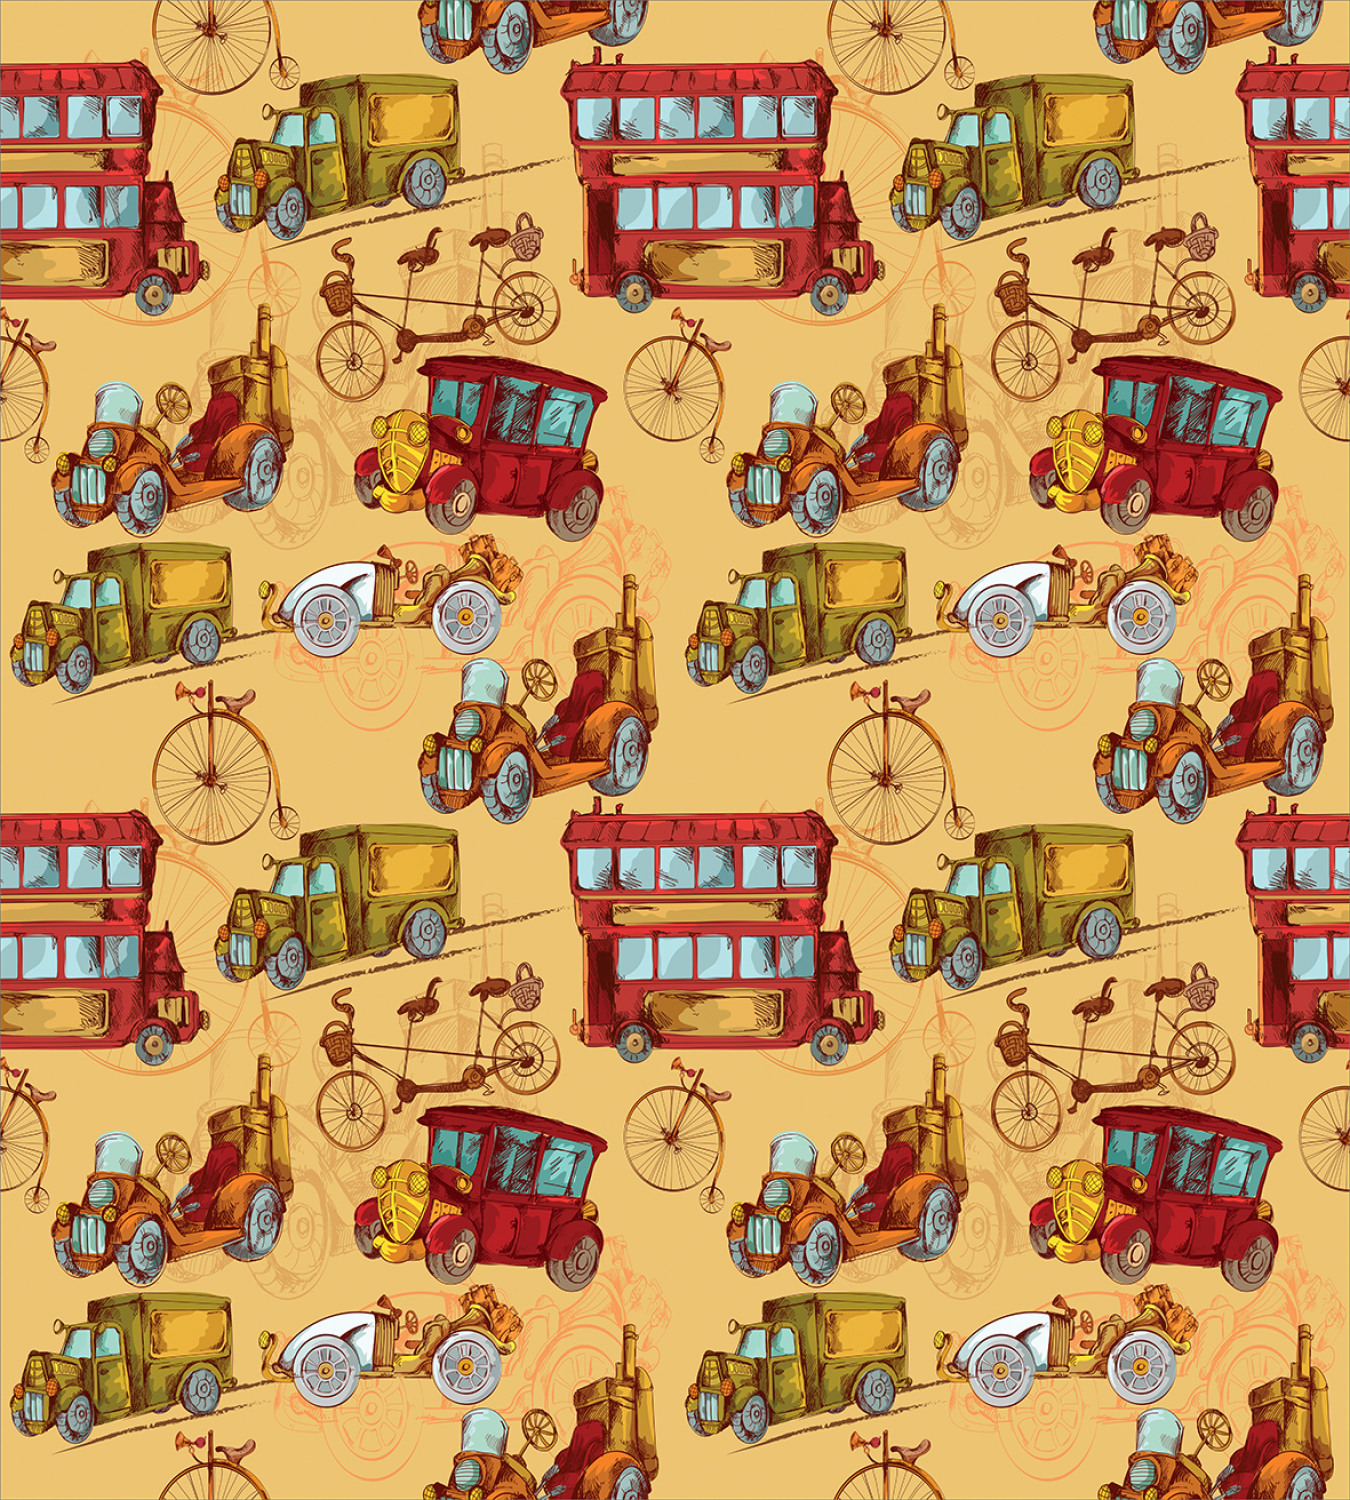 Colorful-Cars-Duvet-Cover-Set-Twin-Queen-King-Sizes-with-Pillow-Shams-Bedding miniature 74